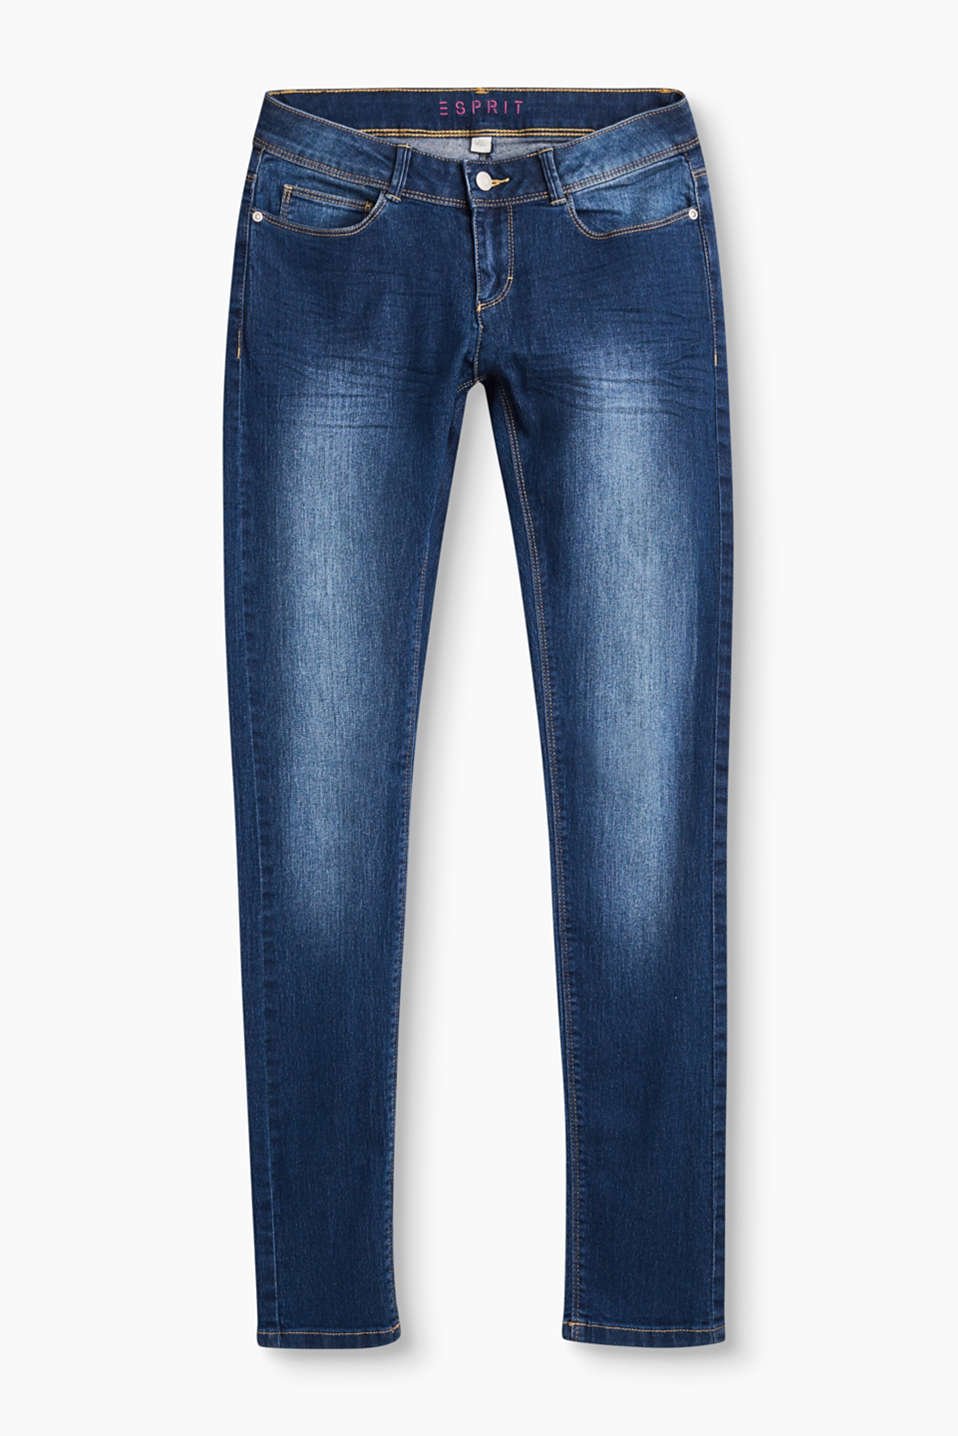 Esprit - Jeans stretch basic con cintura regolabile